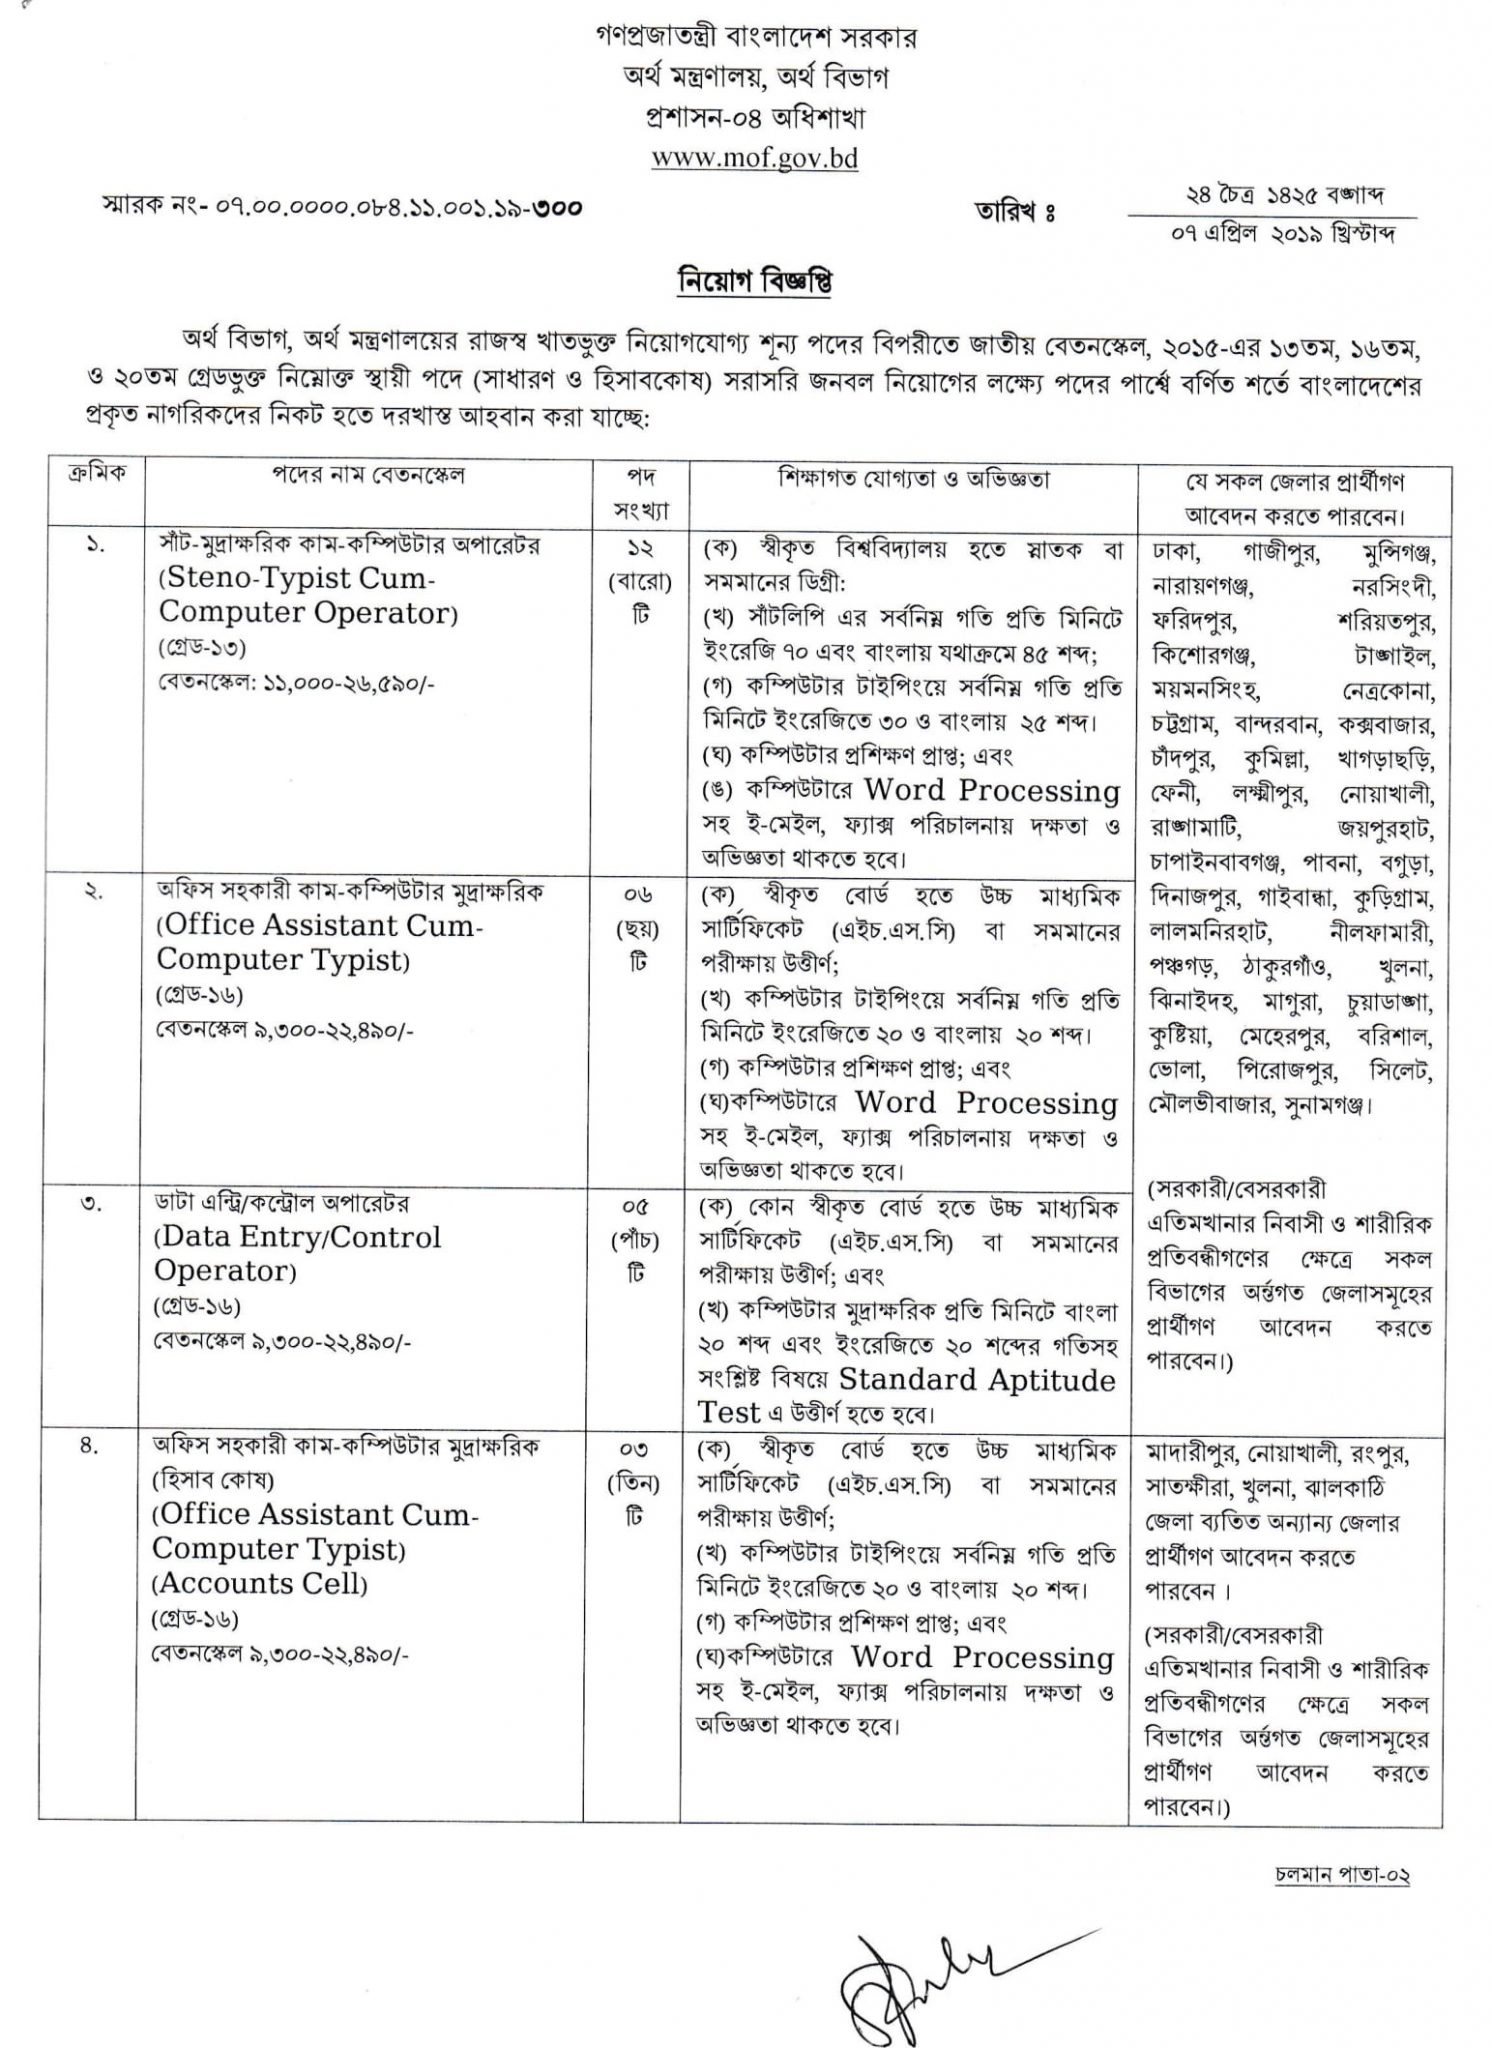 Ministry of Finance Job Circular April 2019 - Daily News Gallery